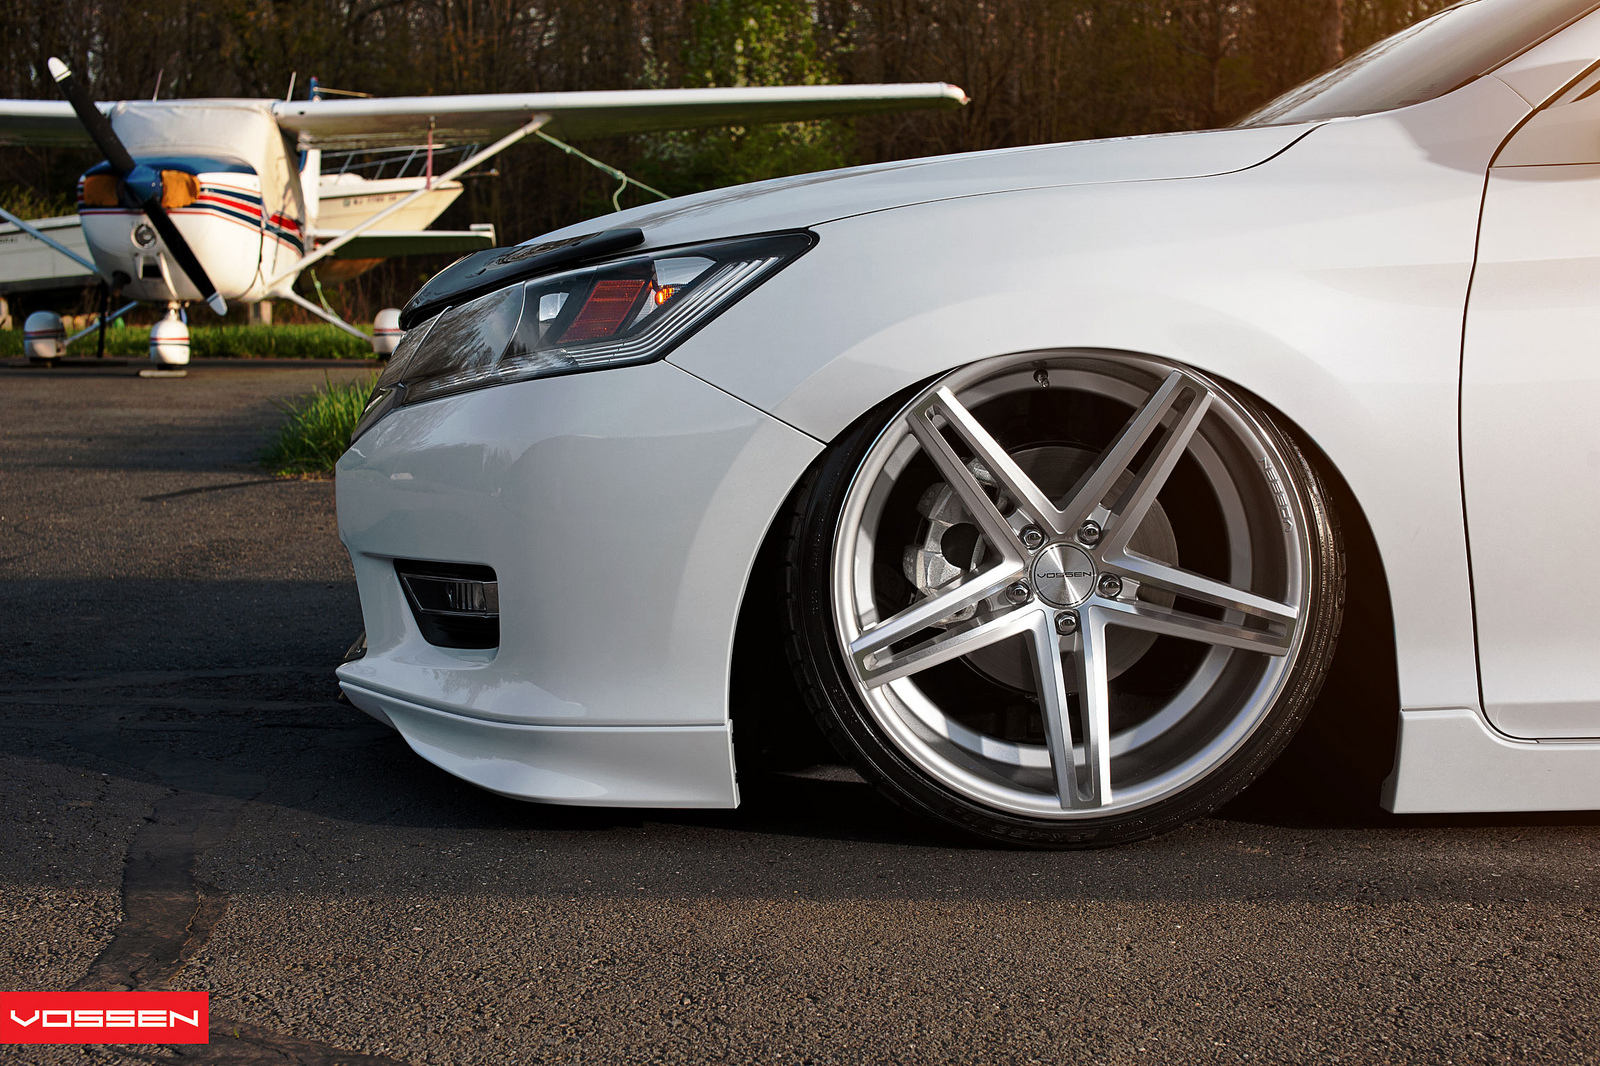 This Vossen Accord Is the Lowest Honda Ever - autoevolution